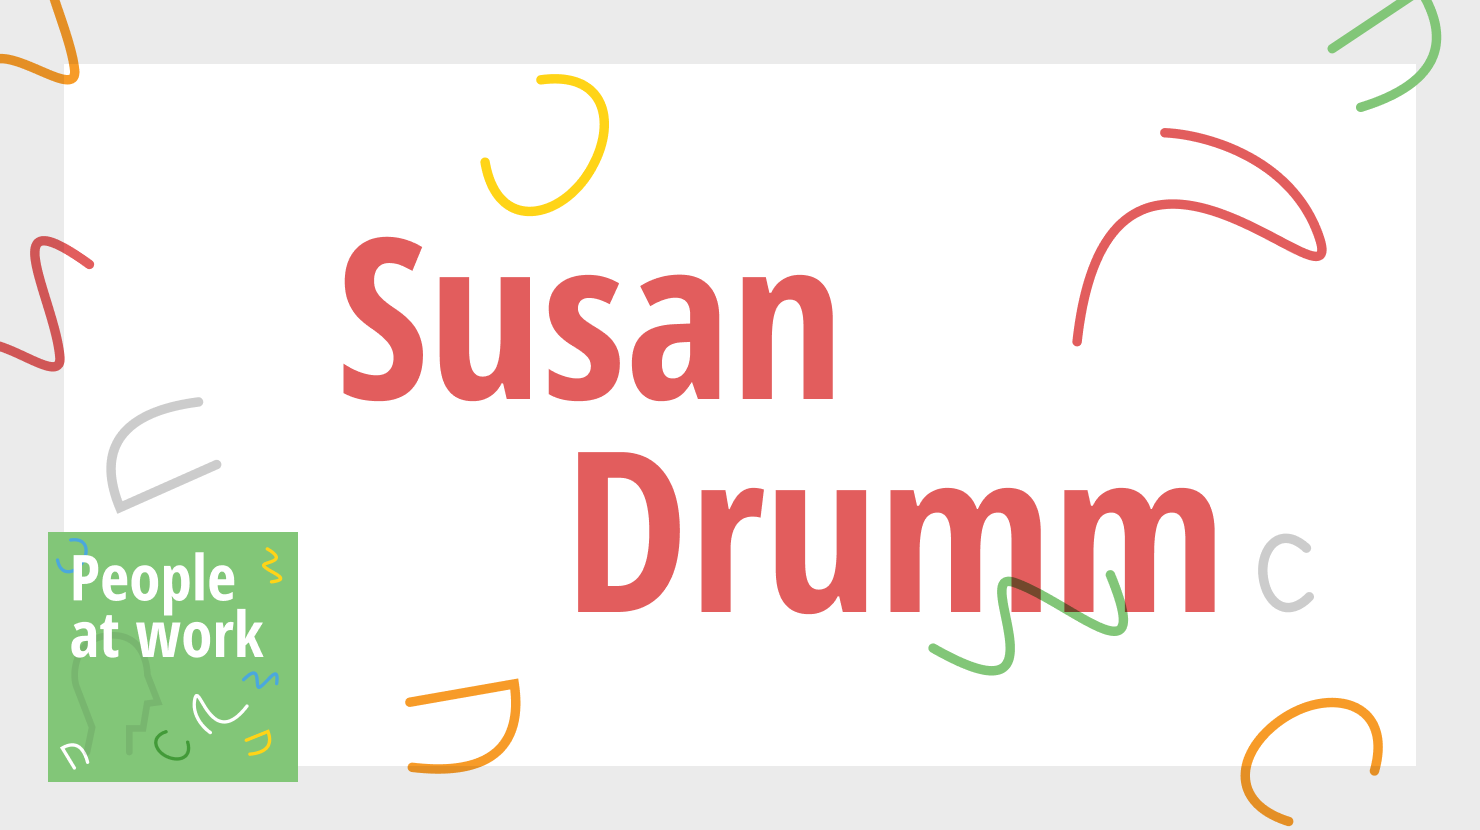 A different way to build resilience with Susan Drumm